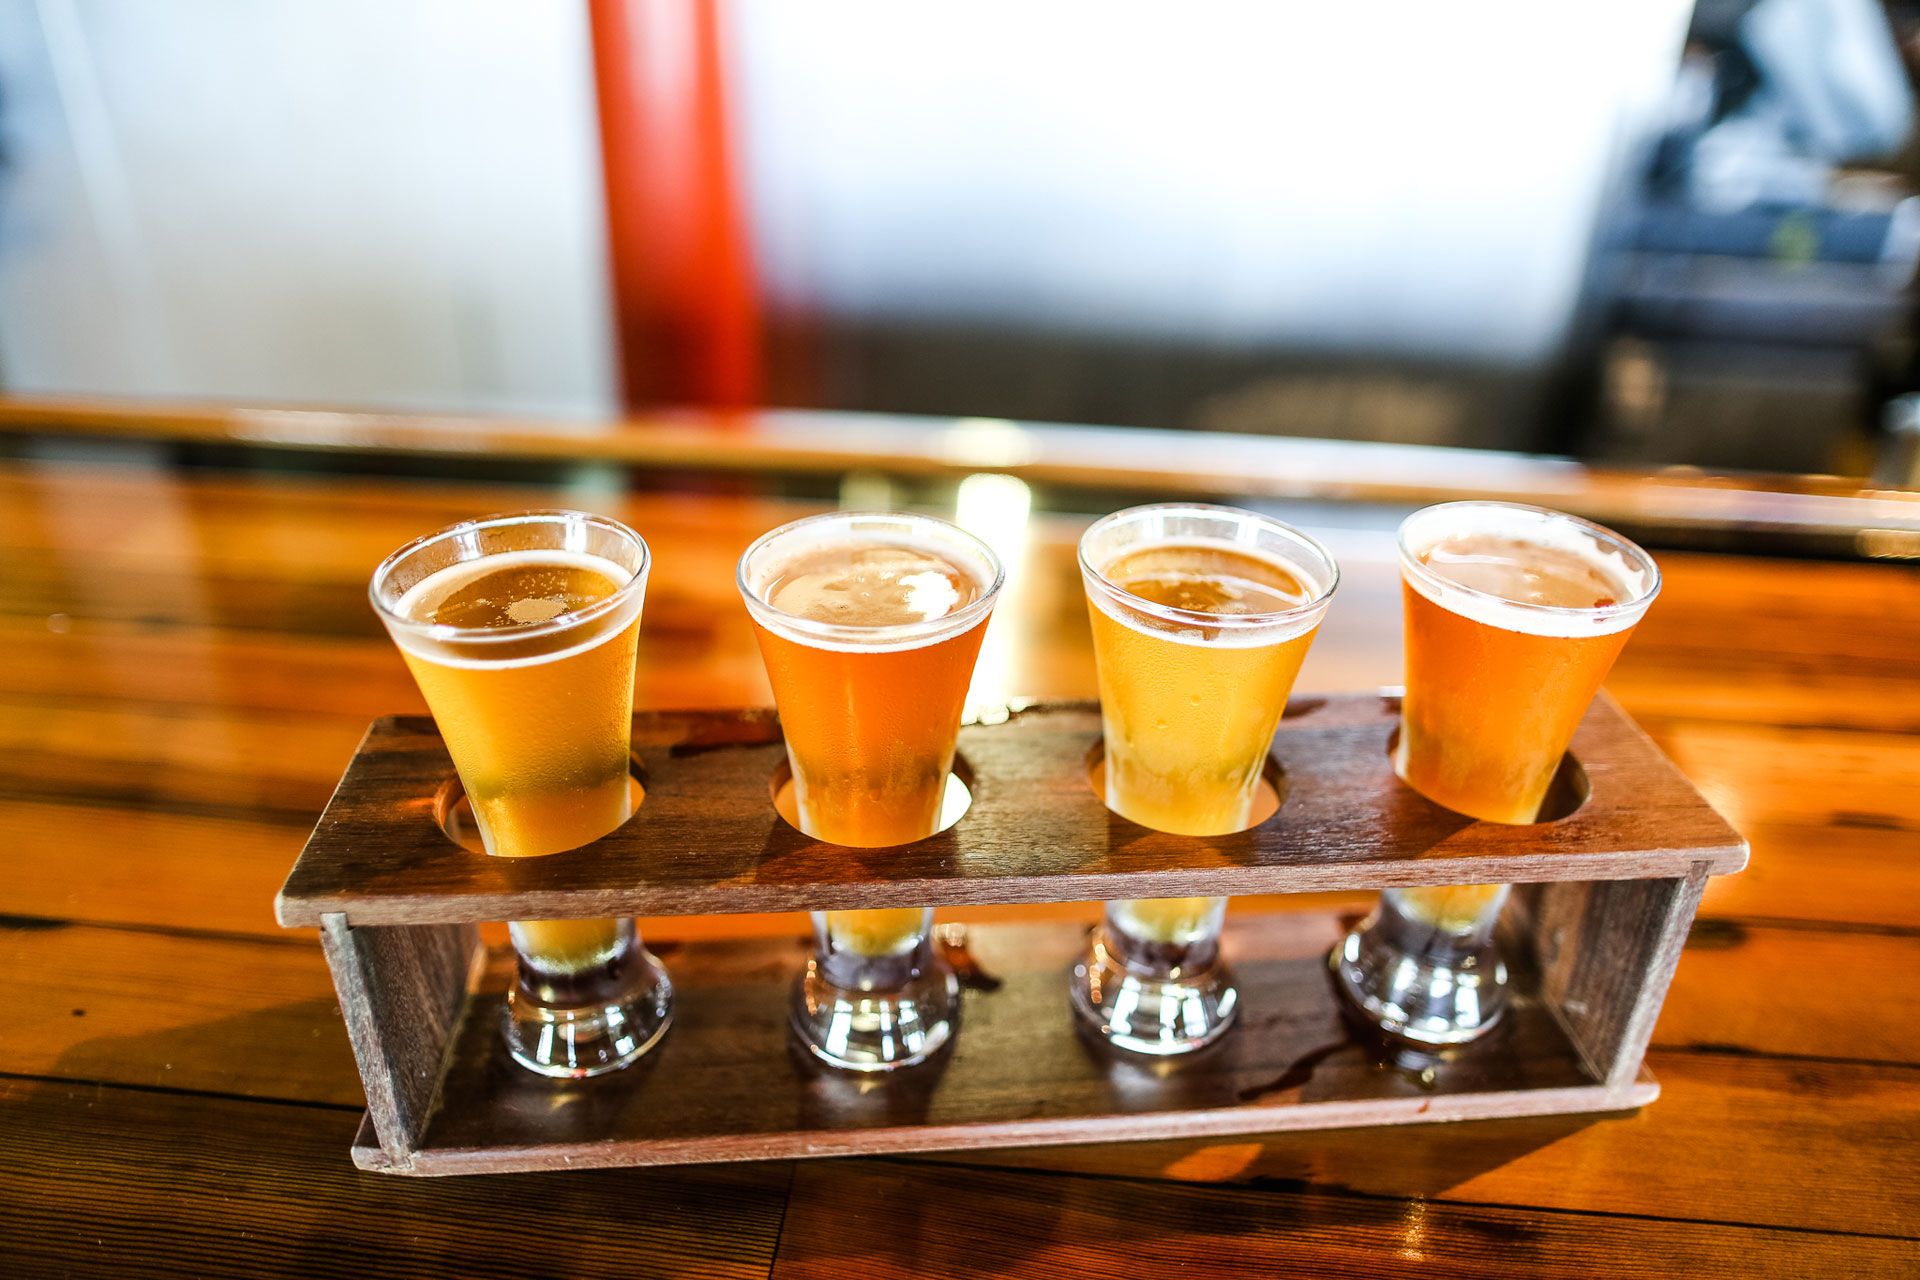 Cap off your experience with a flight of beer